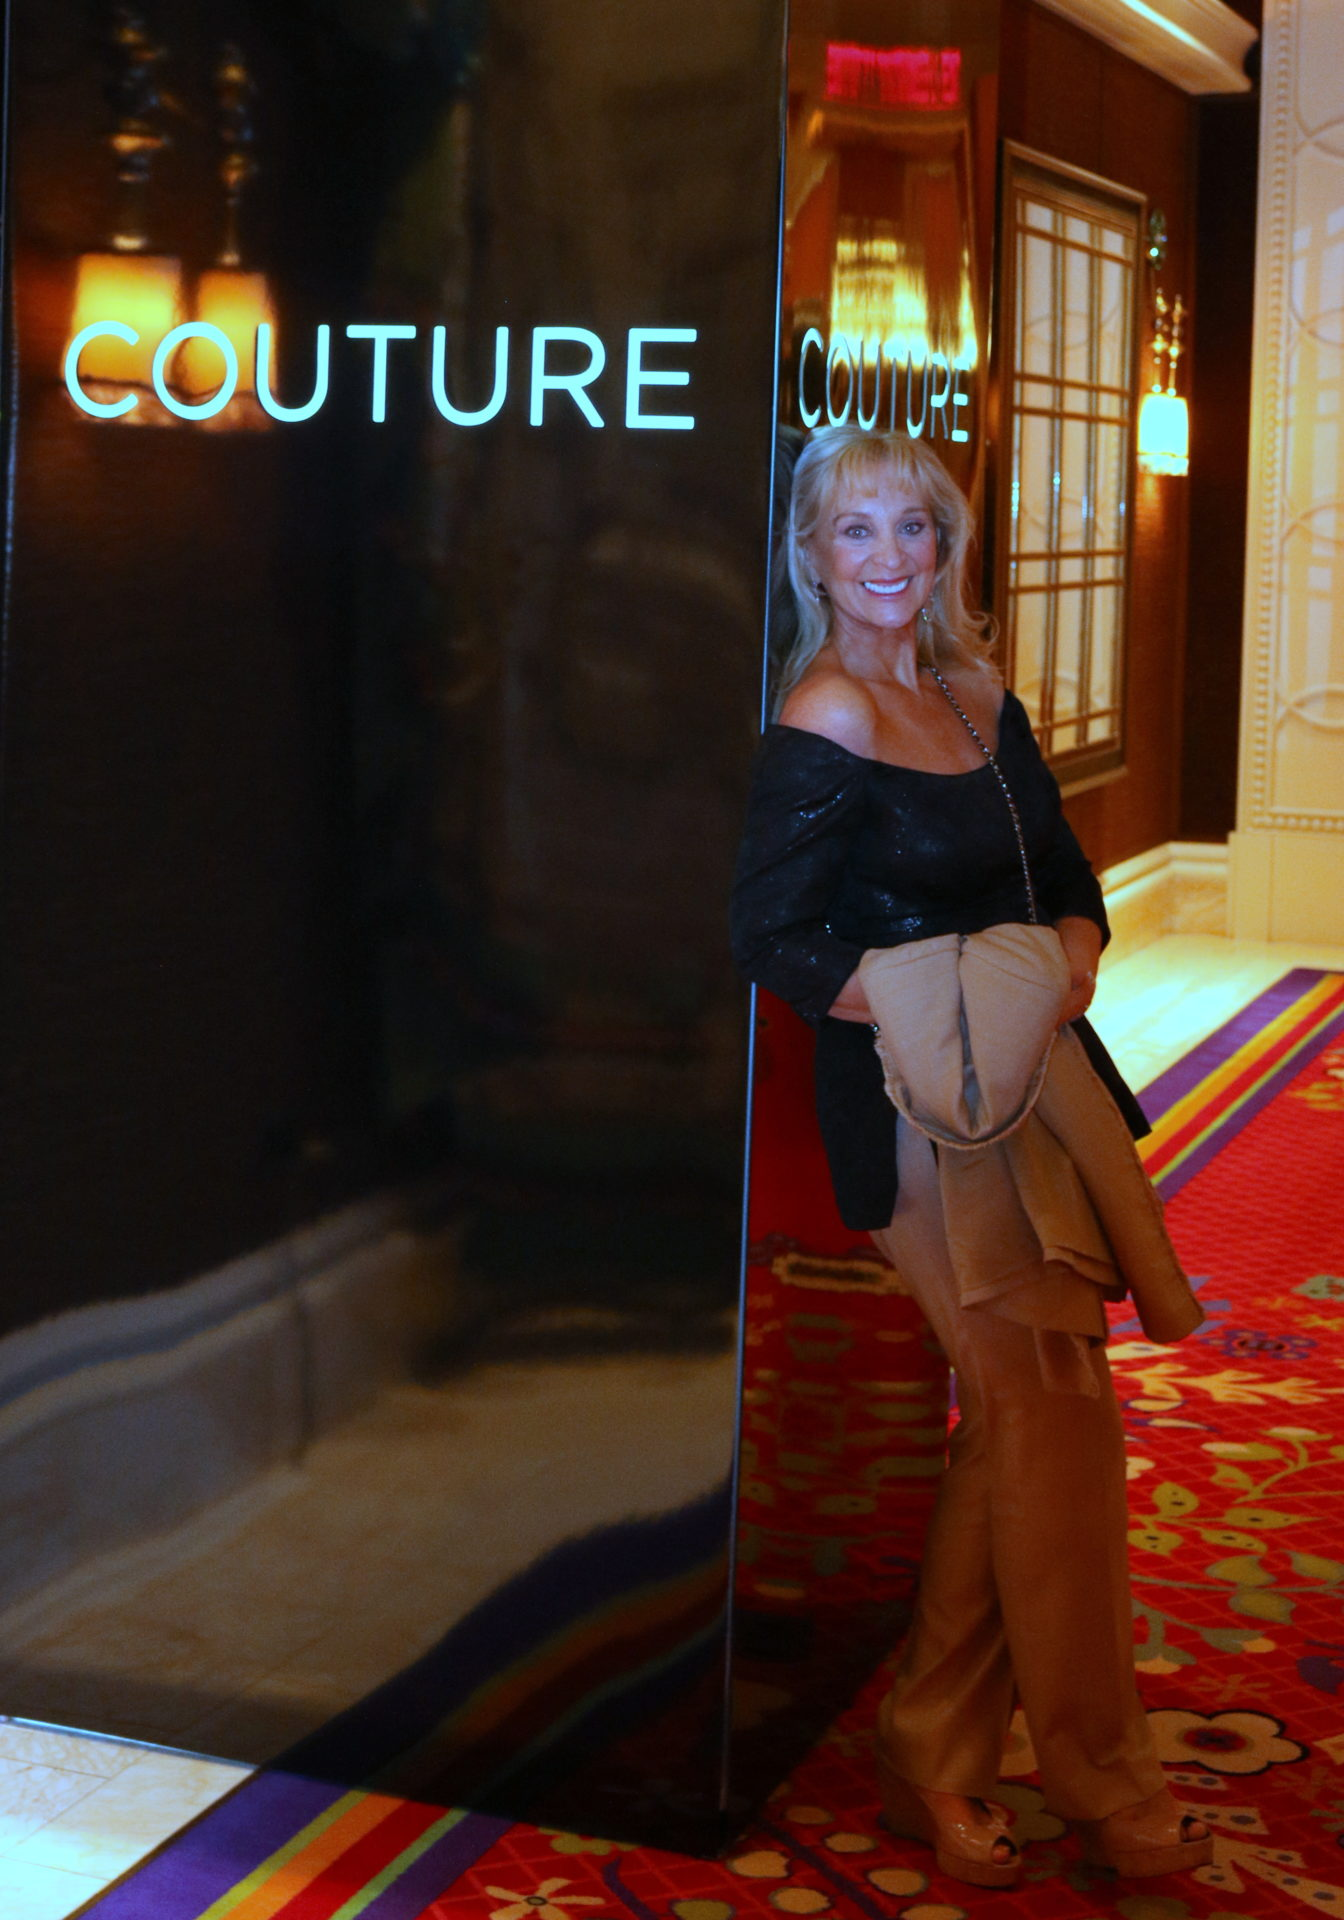 Couture EntranceIMG_7119